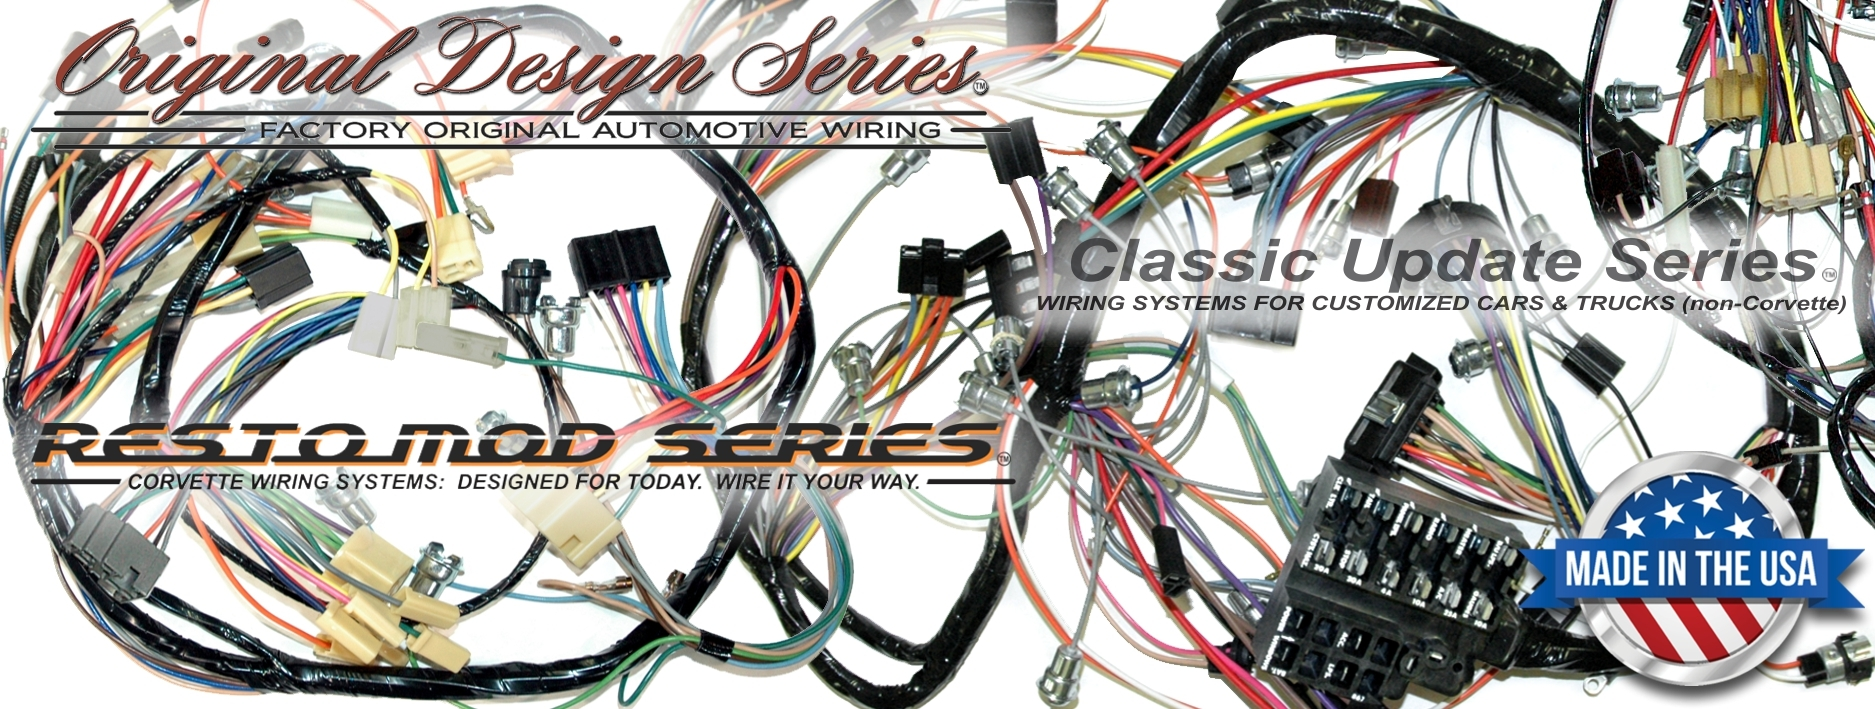 Exact OEM Reproduction Wiring Harnesses and RestoMod Wiring Systems for  Classic & Muscle Cars | Who Makes Wiring Harness |  | Lectric Limited